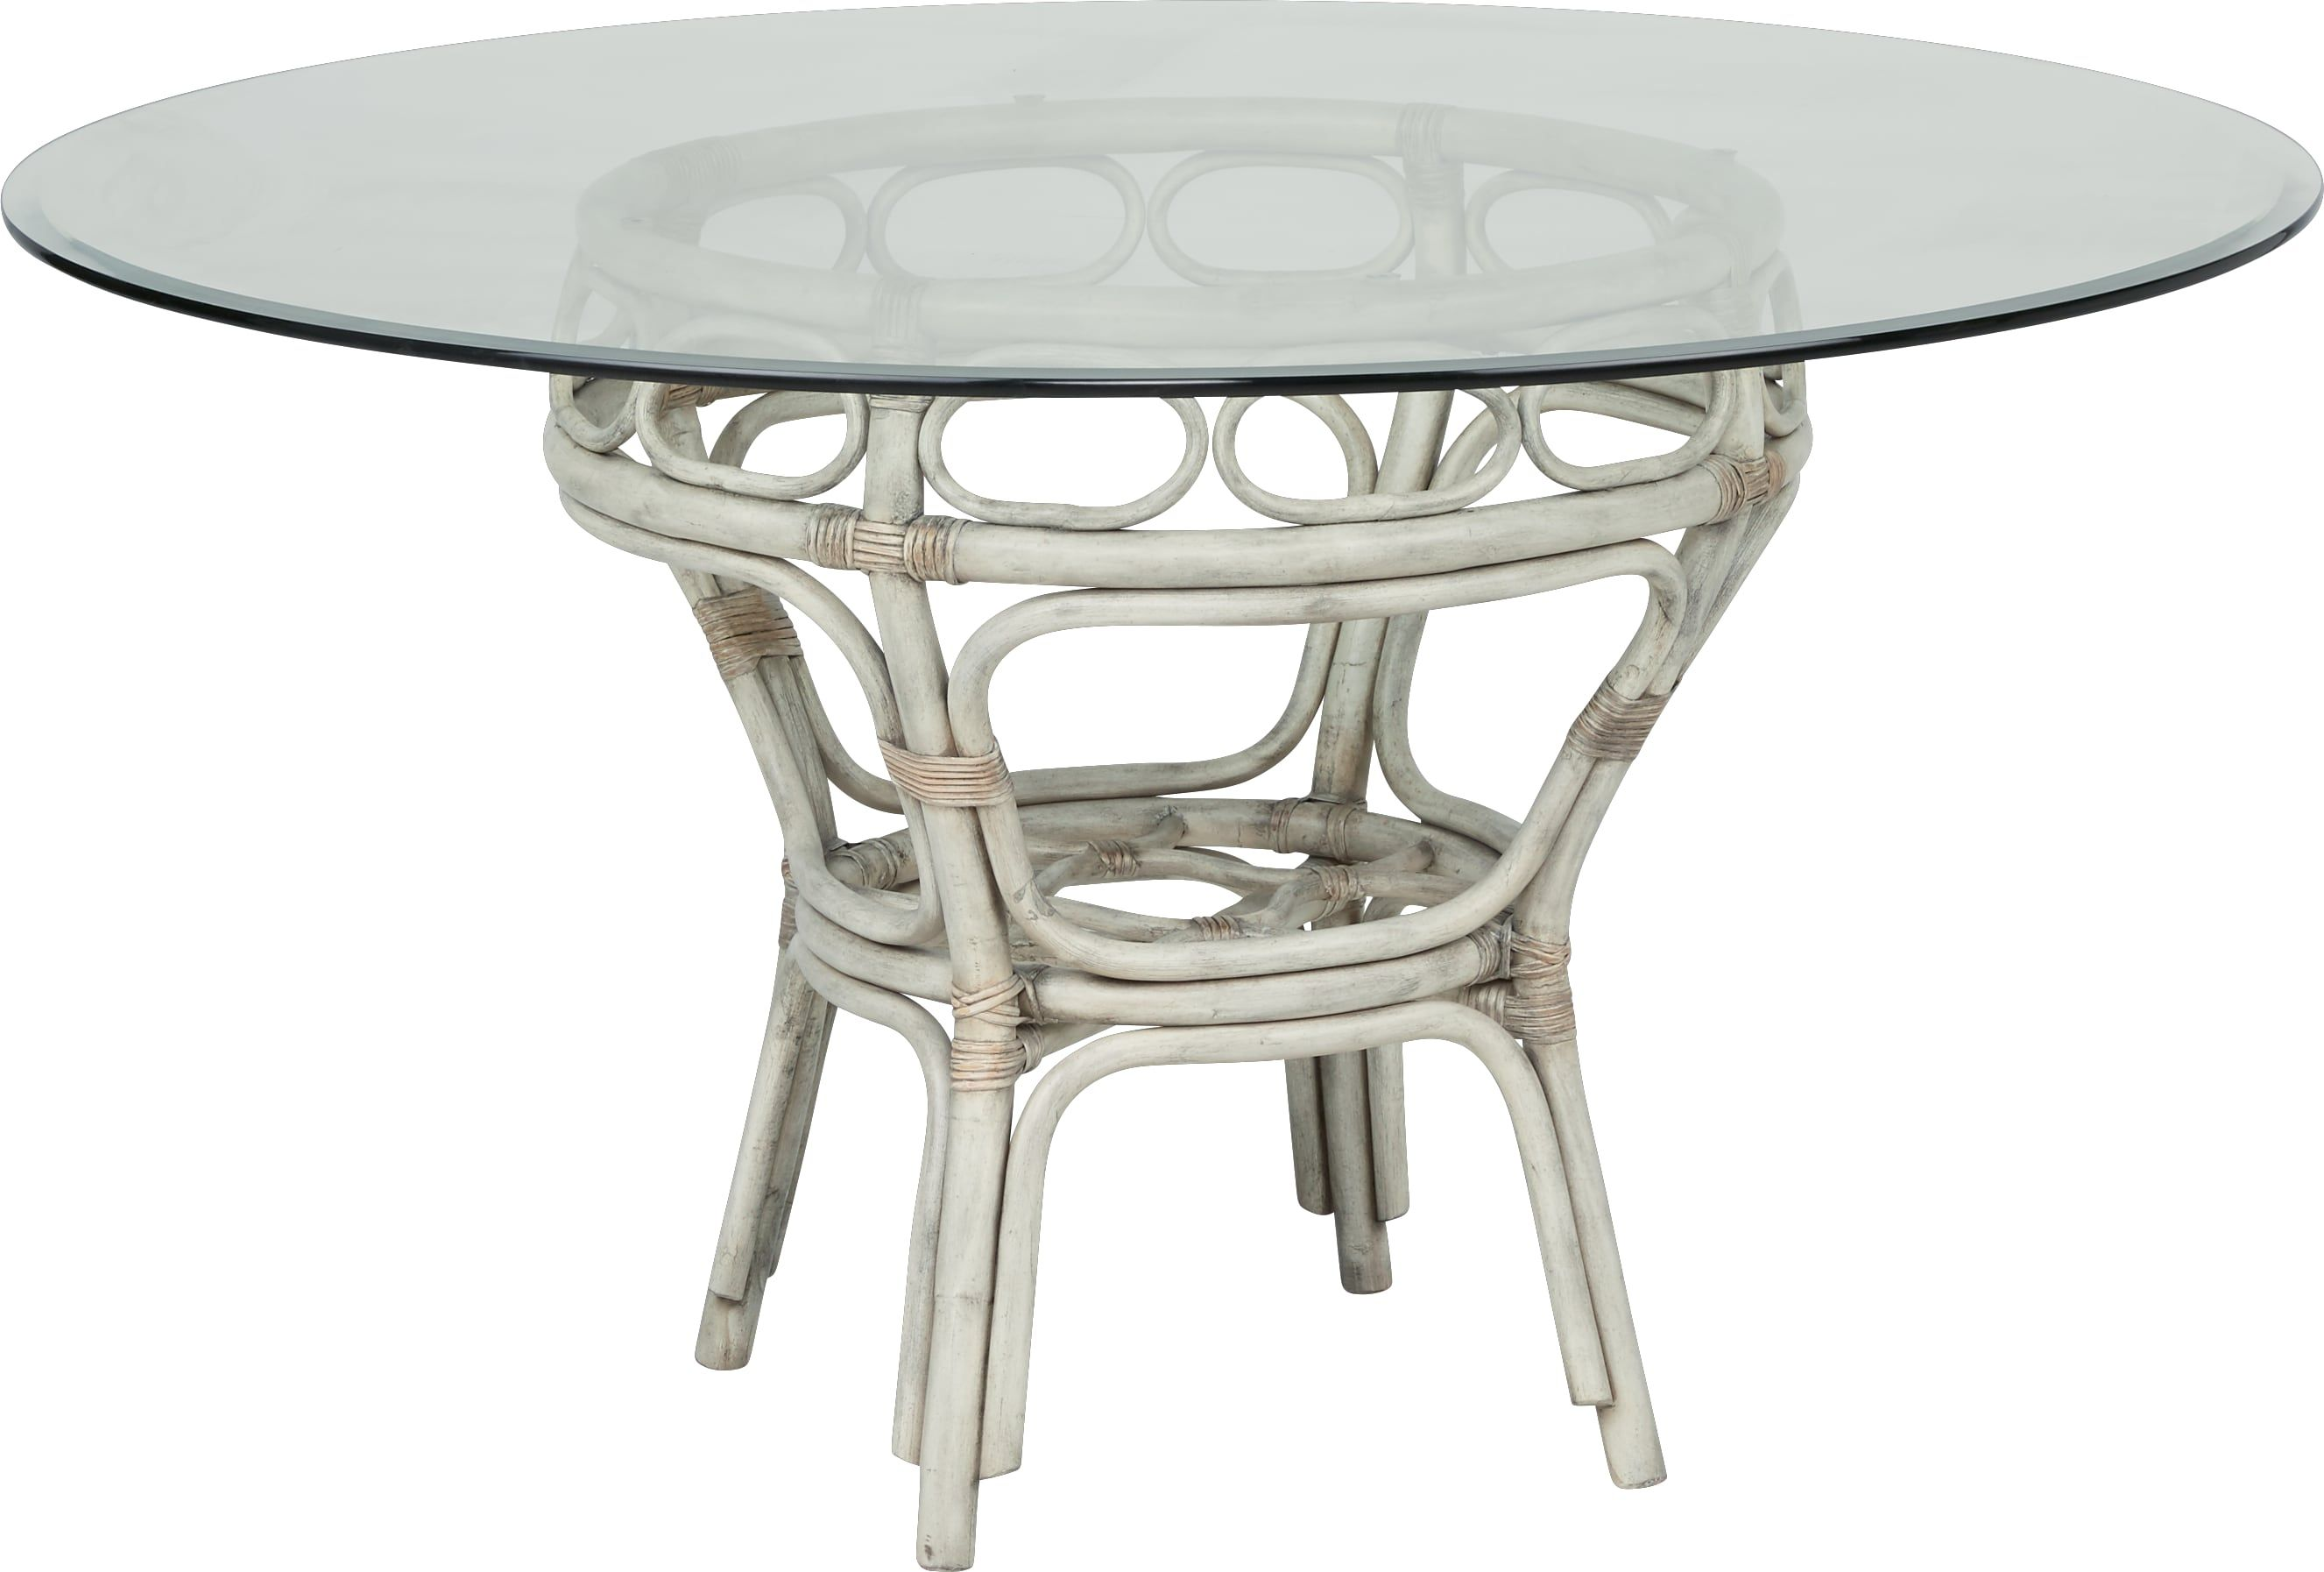 ab330413a679 Cindy Crawford Home Shorecrest White 48 in. Round Dining Table in ...